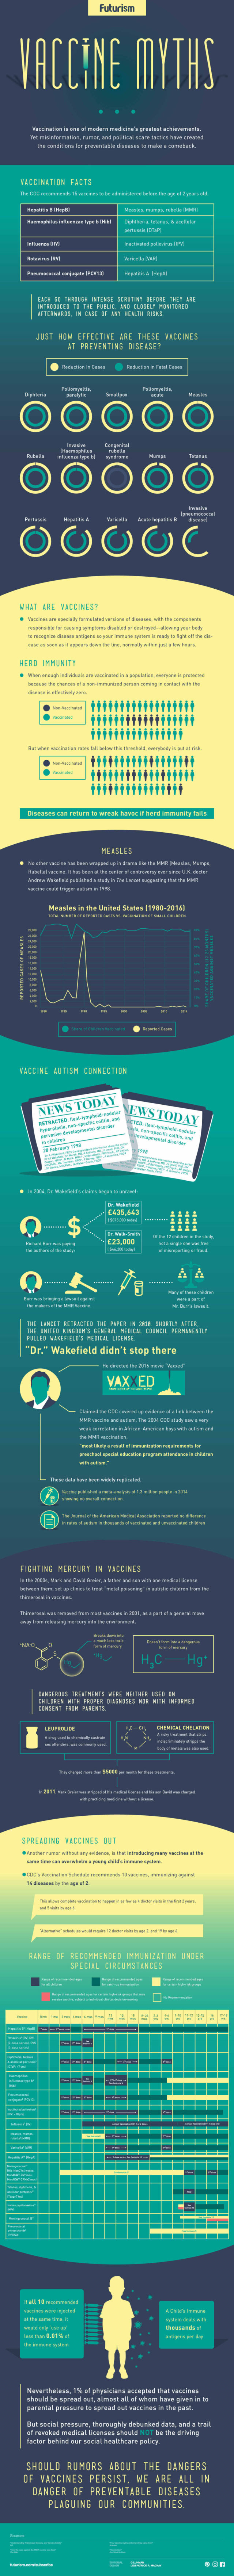 Vaccine Myths - infographic